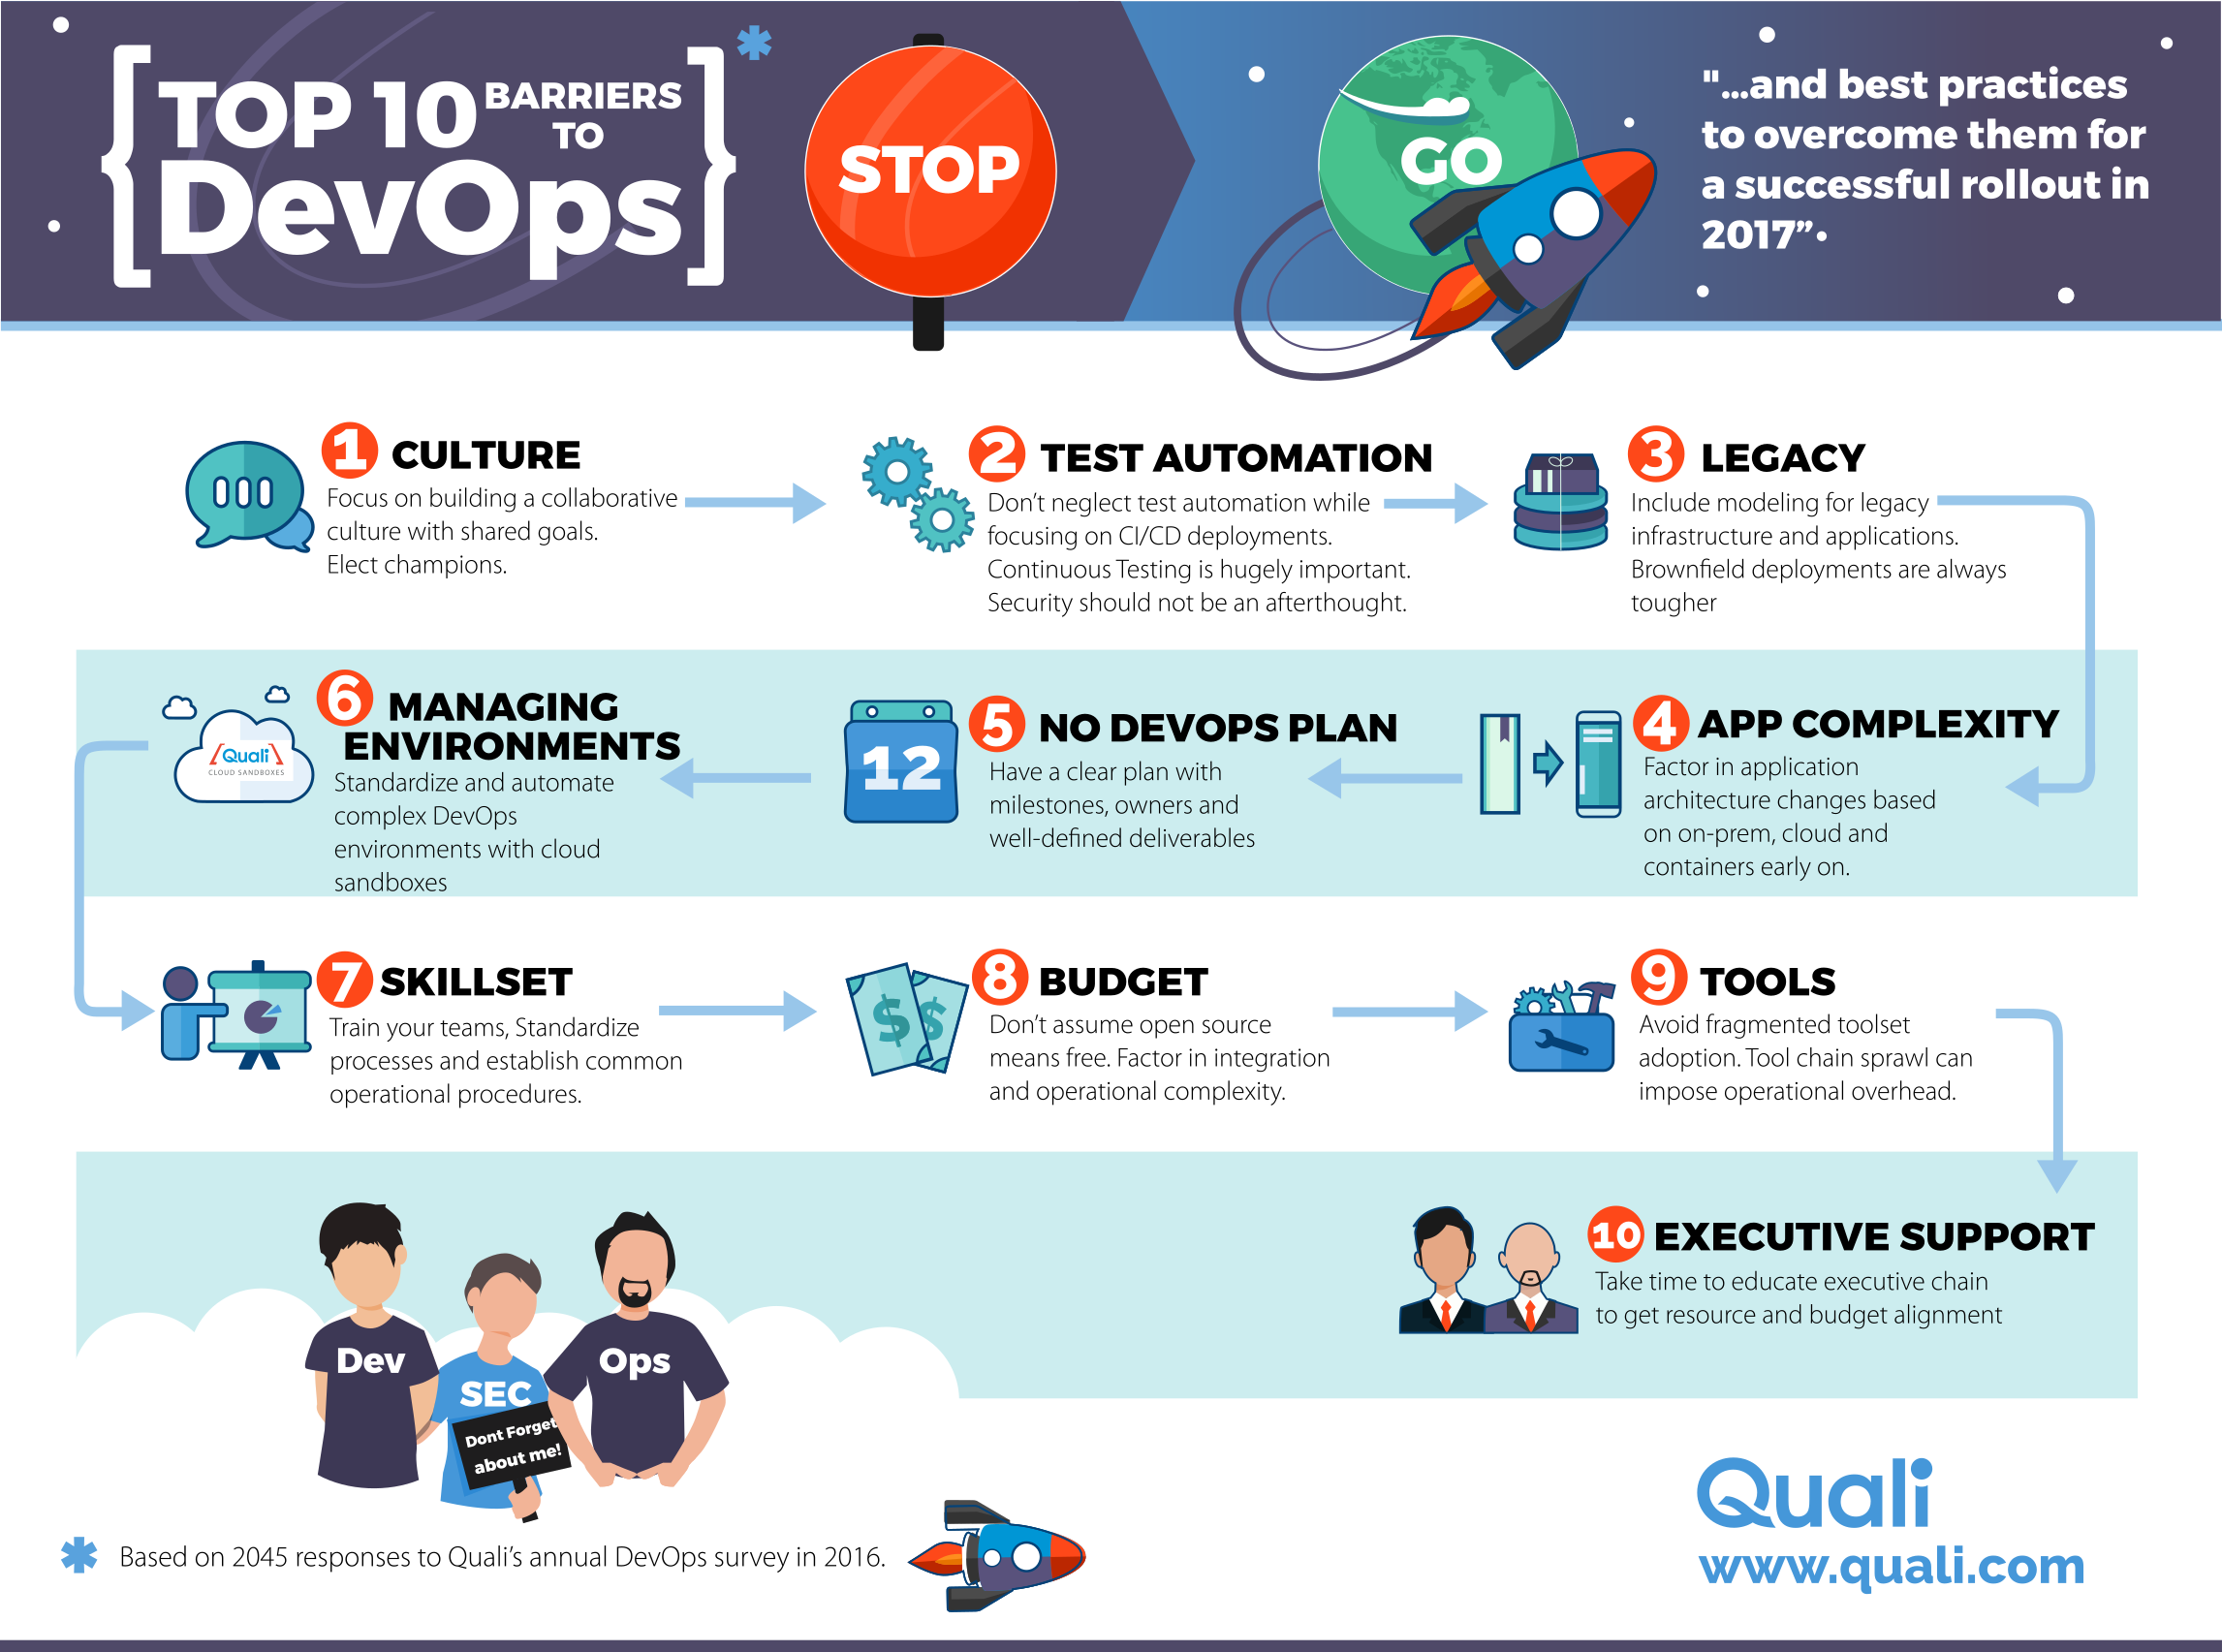 Top 10 Barriers to DevOps - DZone DevOps